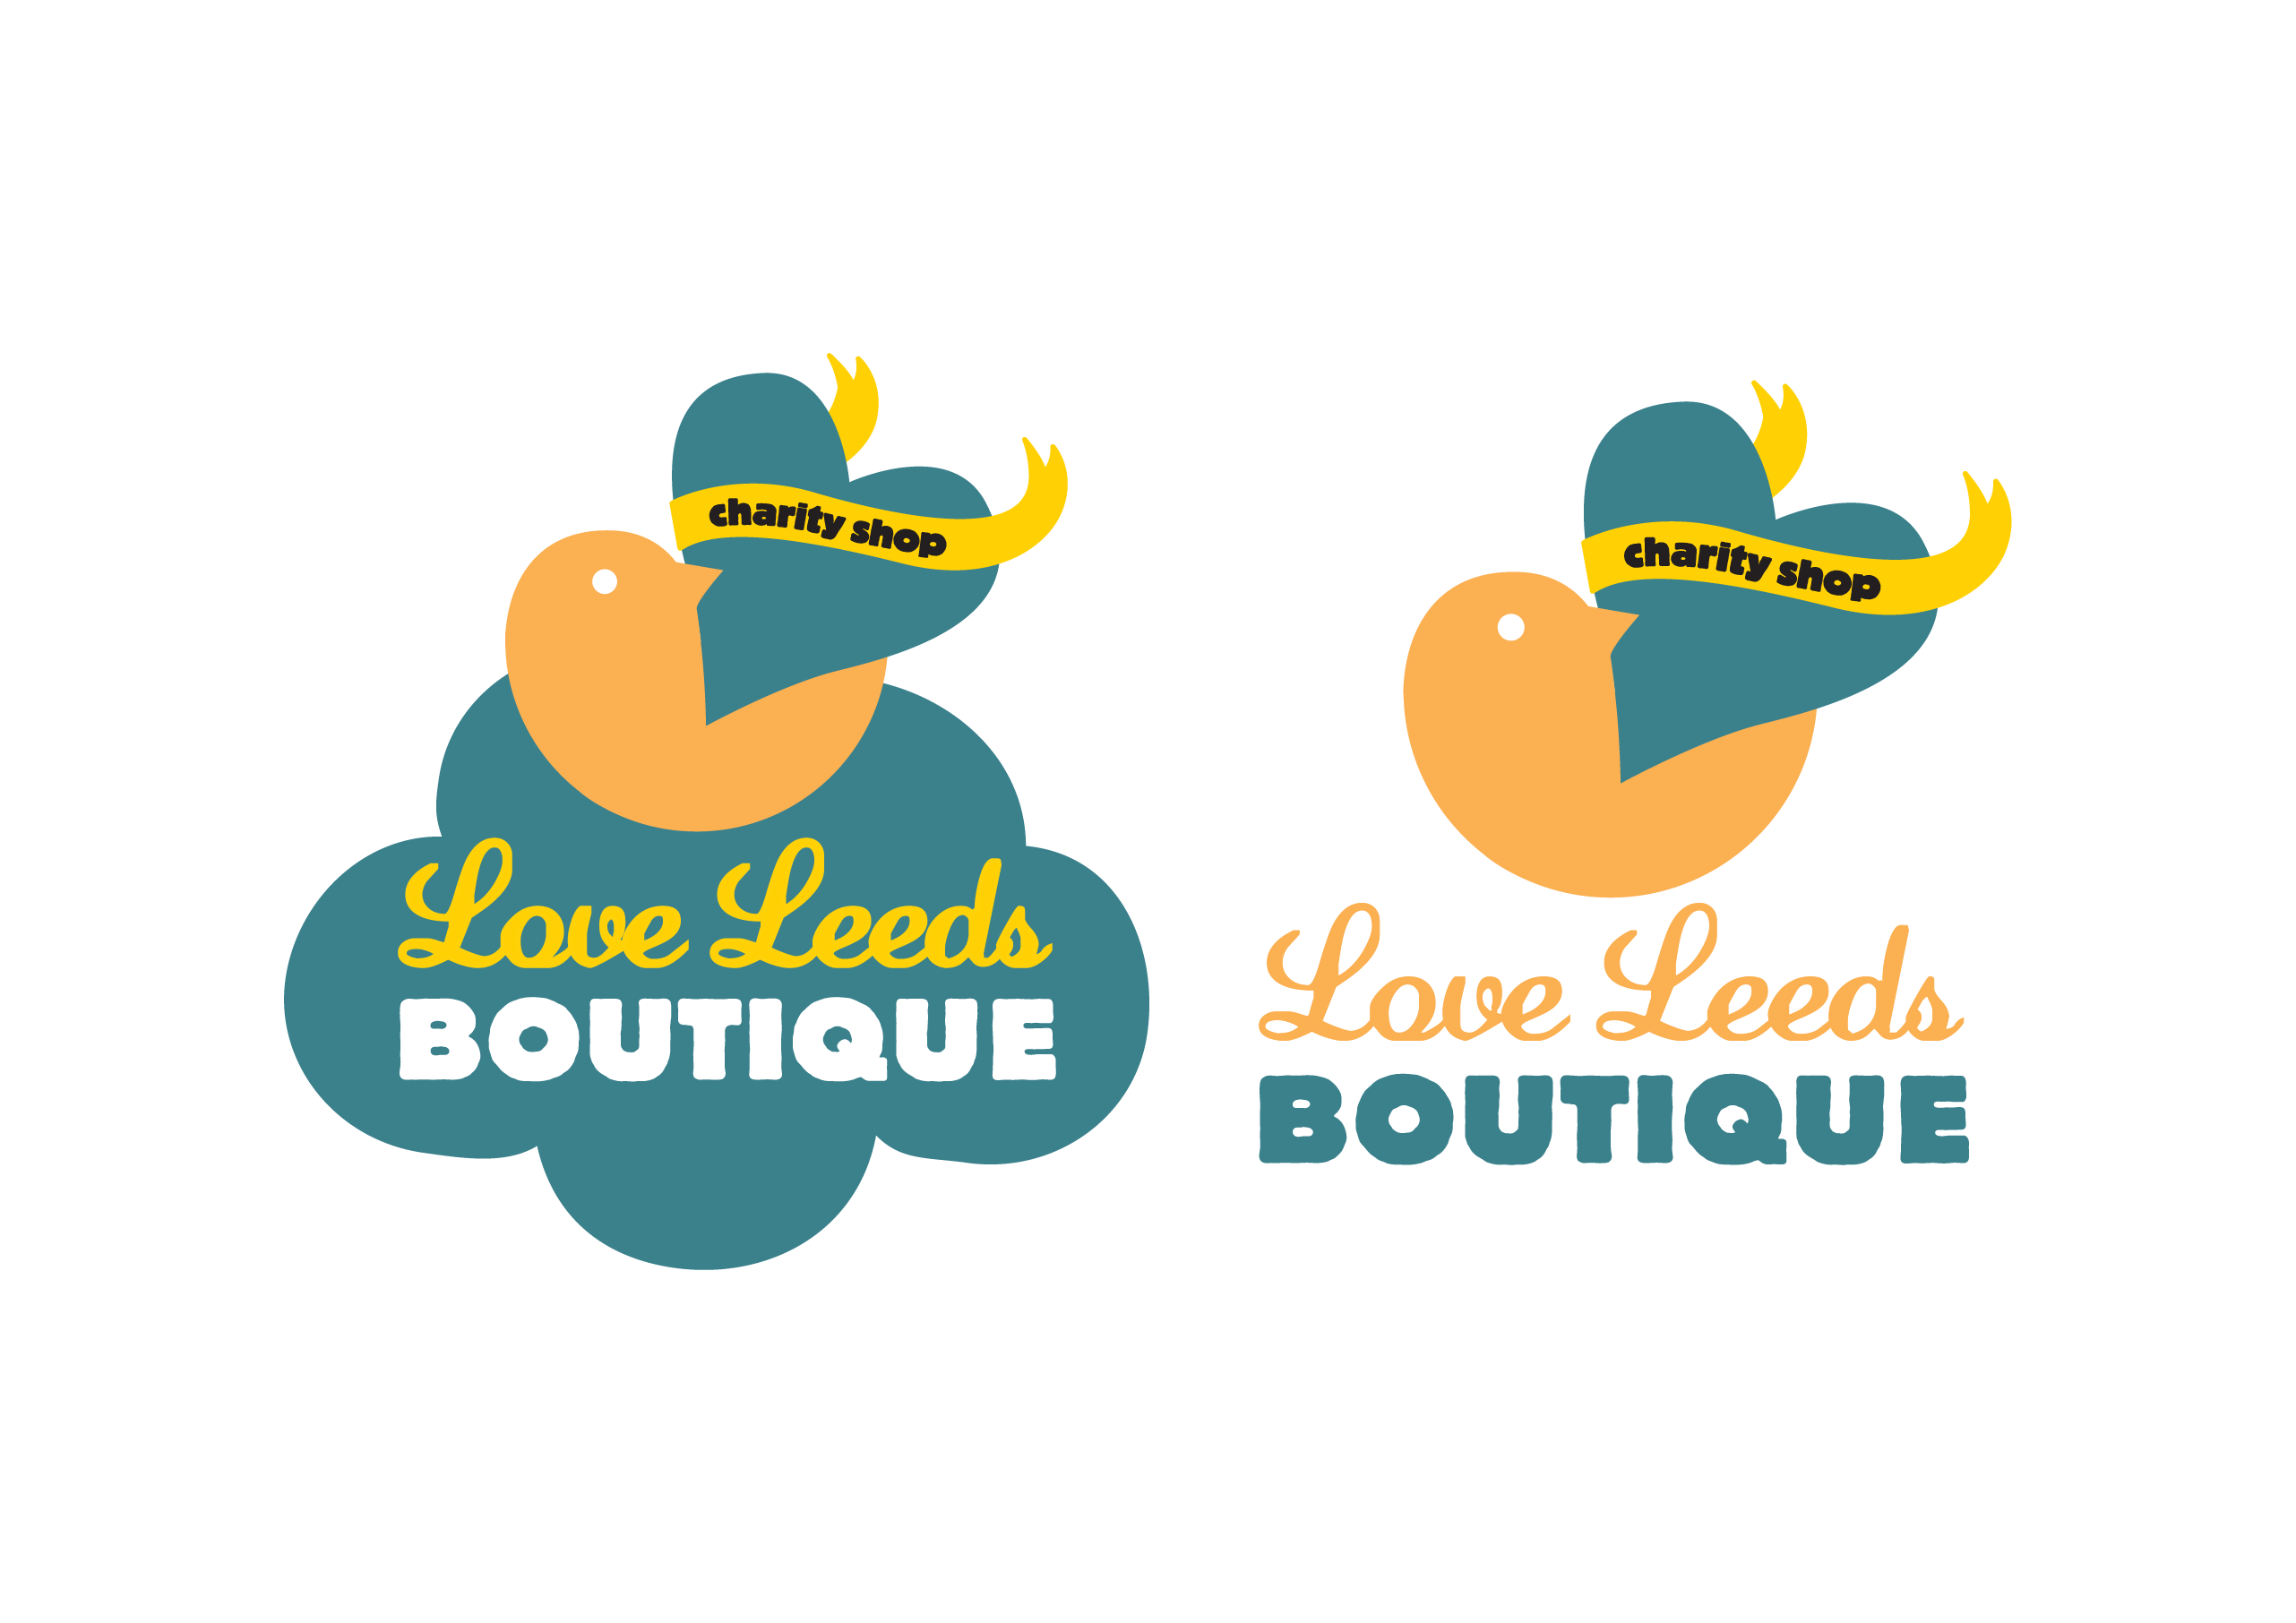 Love Leeds Boutique branding